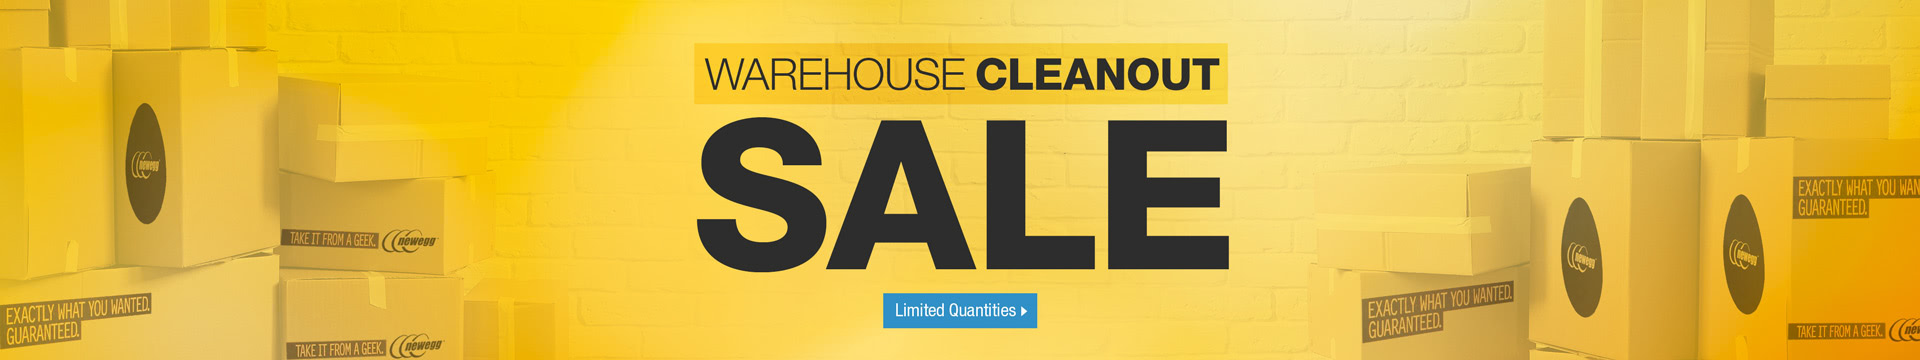 Warehouse Cleanout Sale